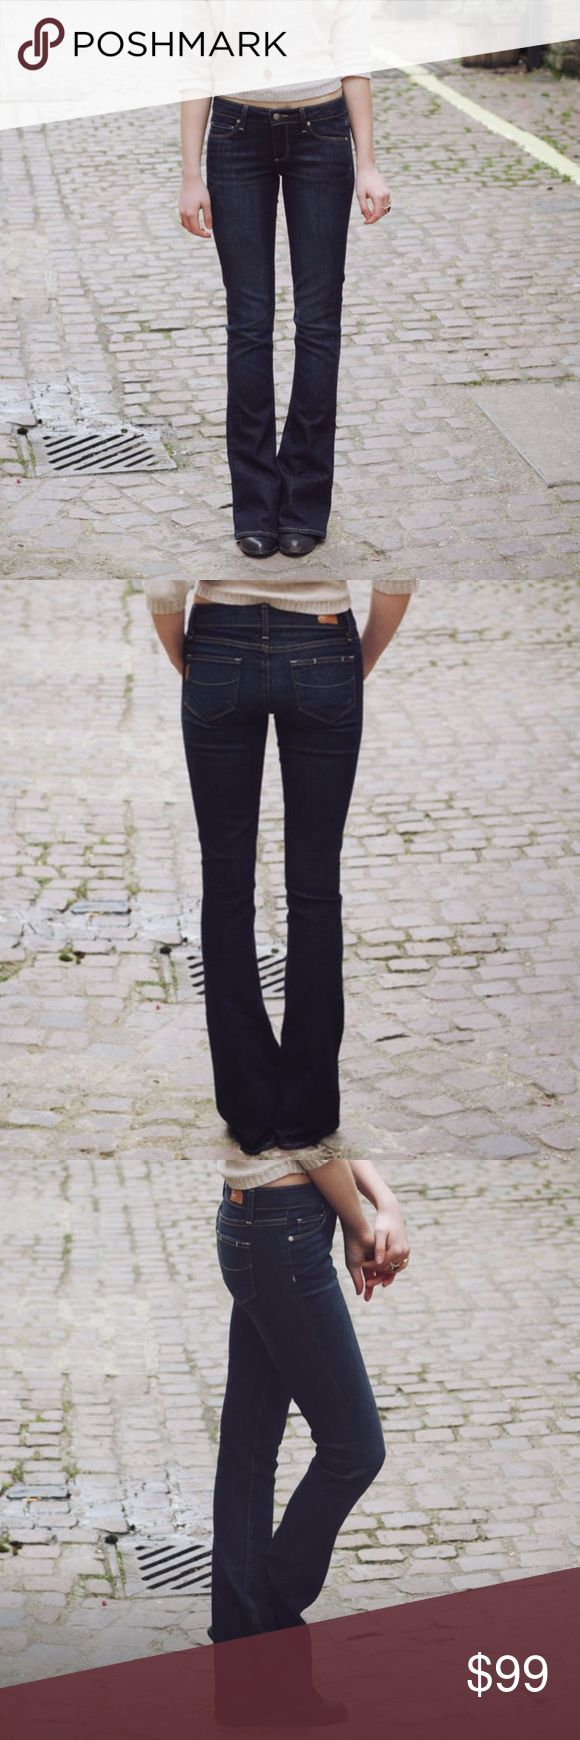 """Paige Lou Lou Tulip Flare These petite flare jeans feature 5-pocket styling and a single-button closure. Stitching at back pockets. Mild distressing. 20"""" leg opening. 27 x 32. Paige Jeans Jeans Flare & Wide Leg"""